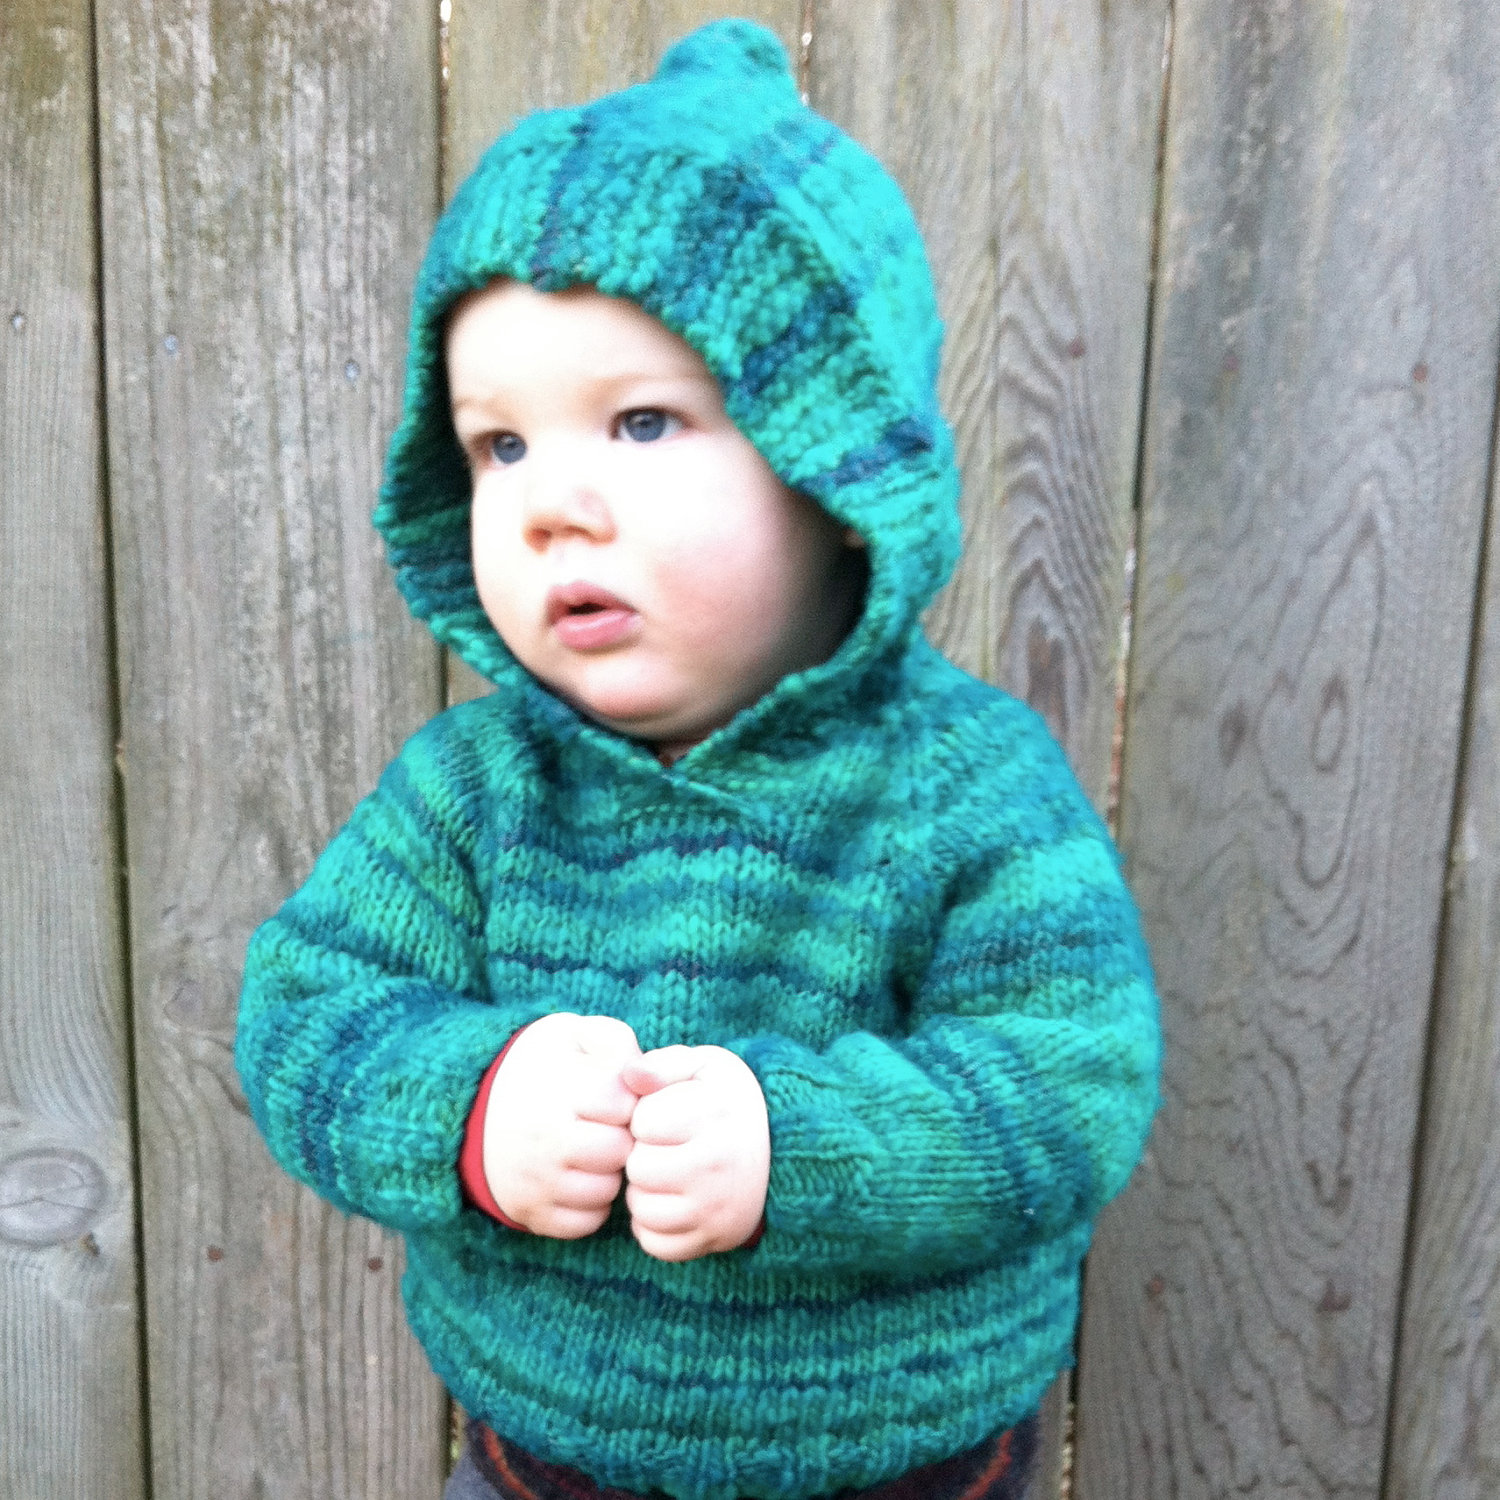 Hooded knit sweater patterns a knitting blog hooded baby sweater knitting pattern dt1010fo